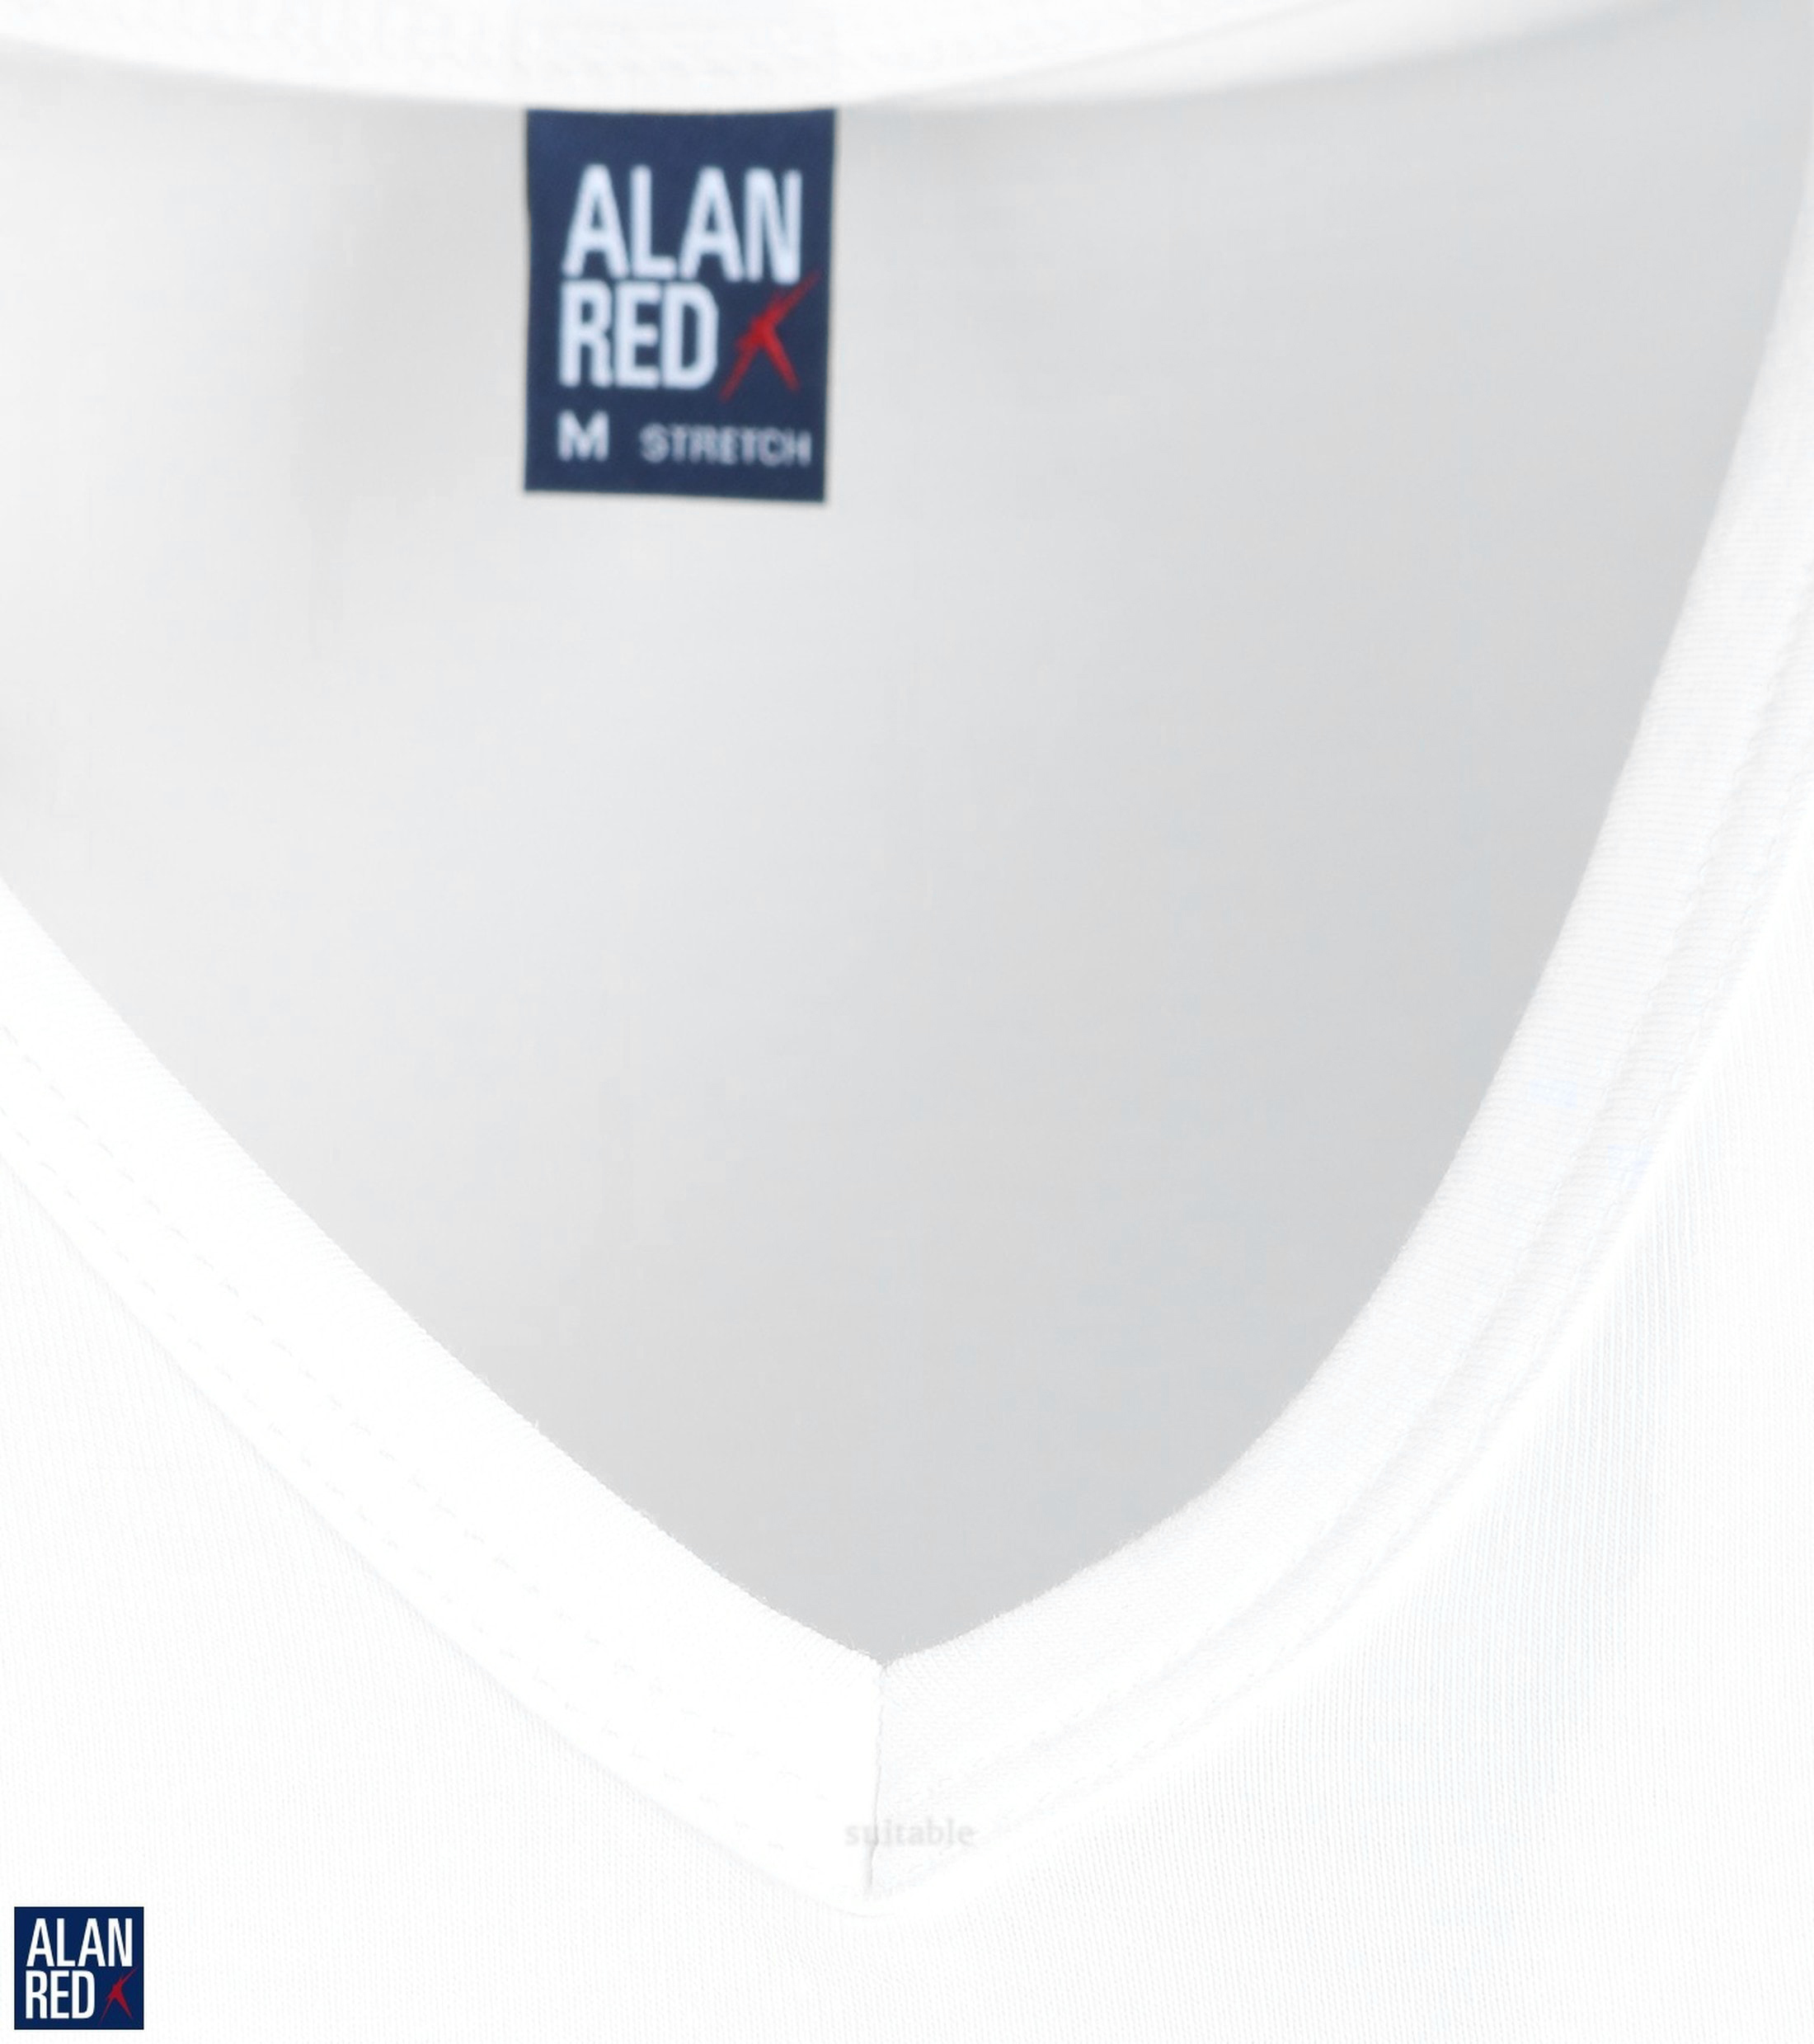 Alan Red Oklahoma T-shirt Stretch Wit (2pack) foto 1